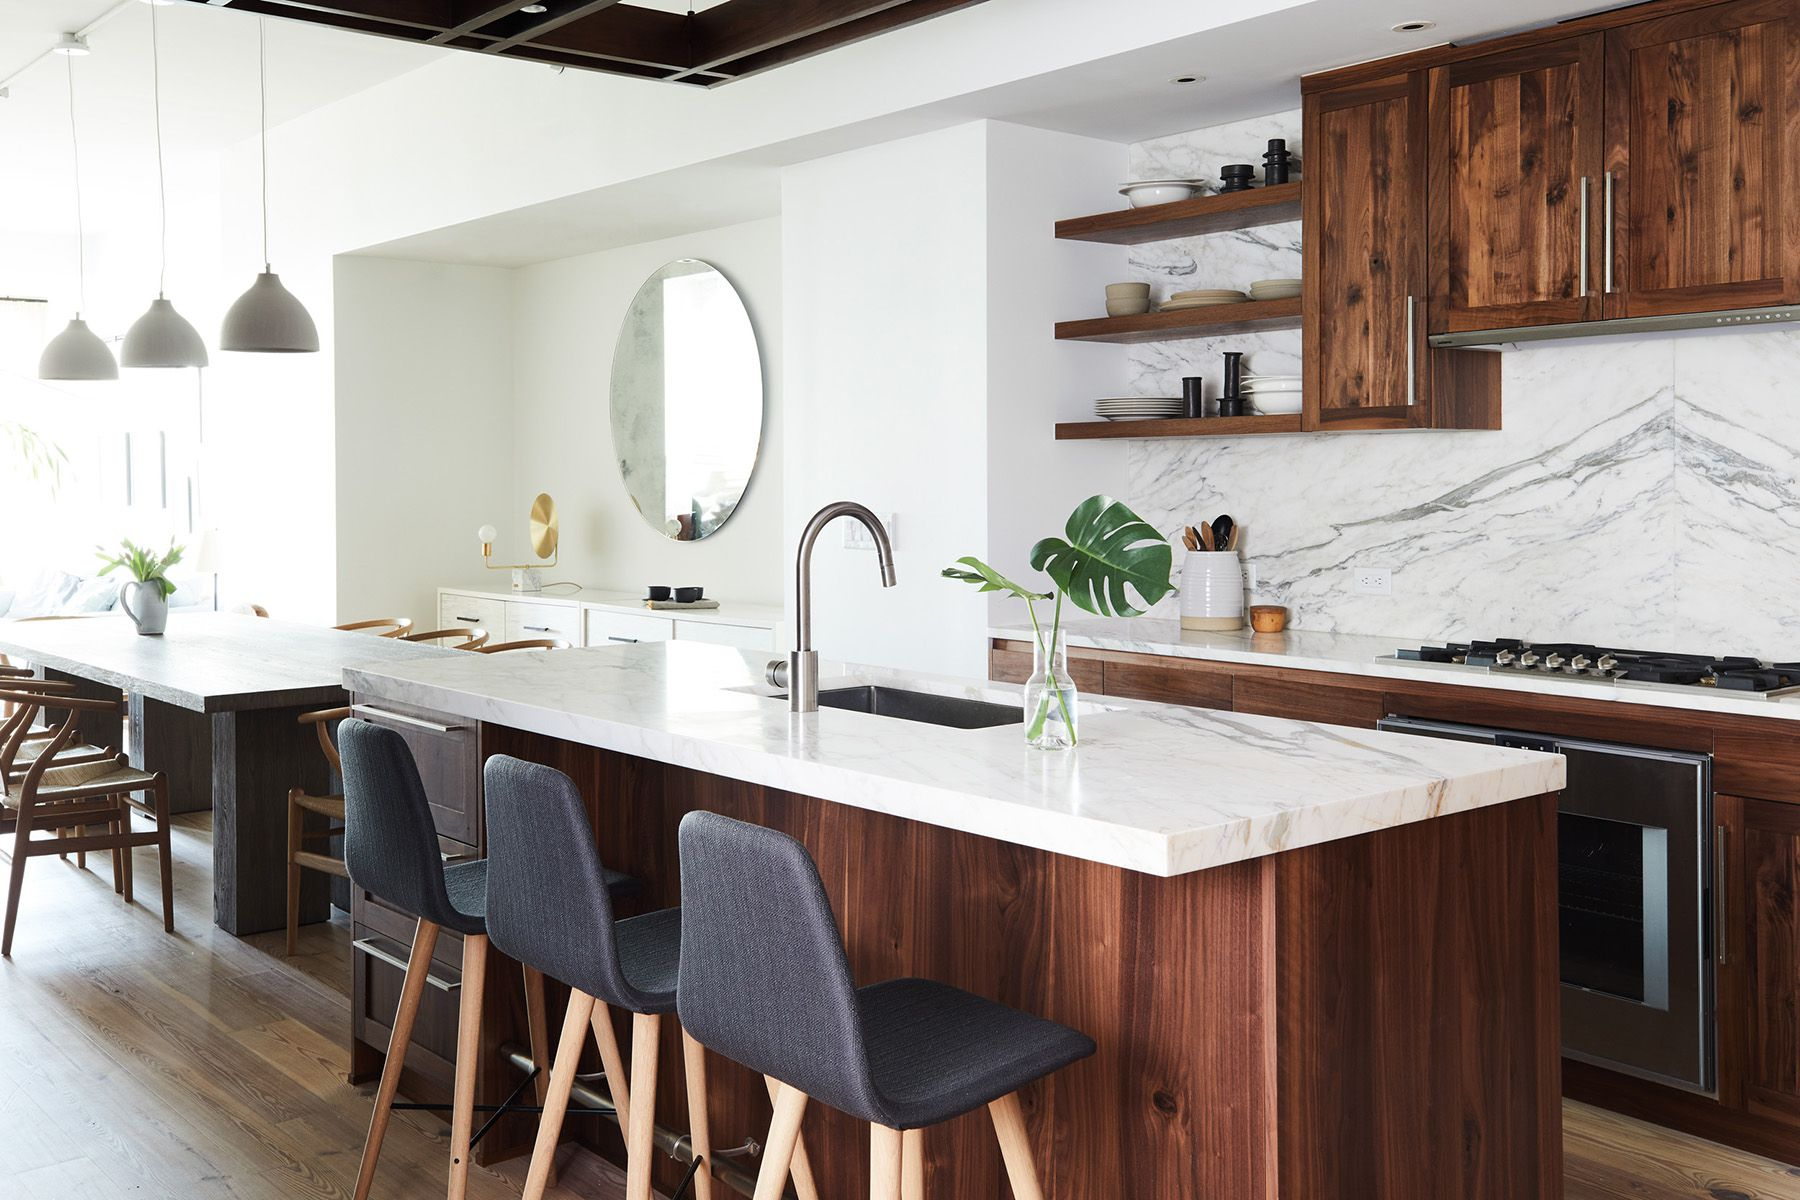 2020 Kitchen Trends What Design Trends Are In For 2020